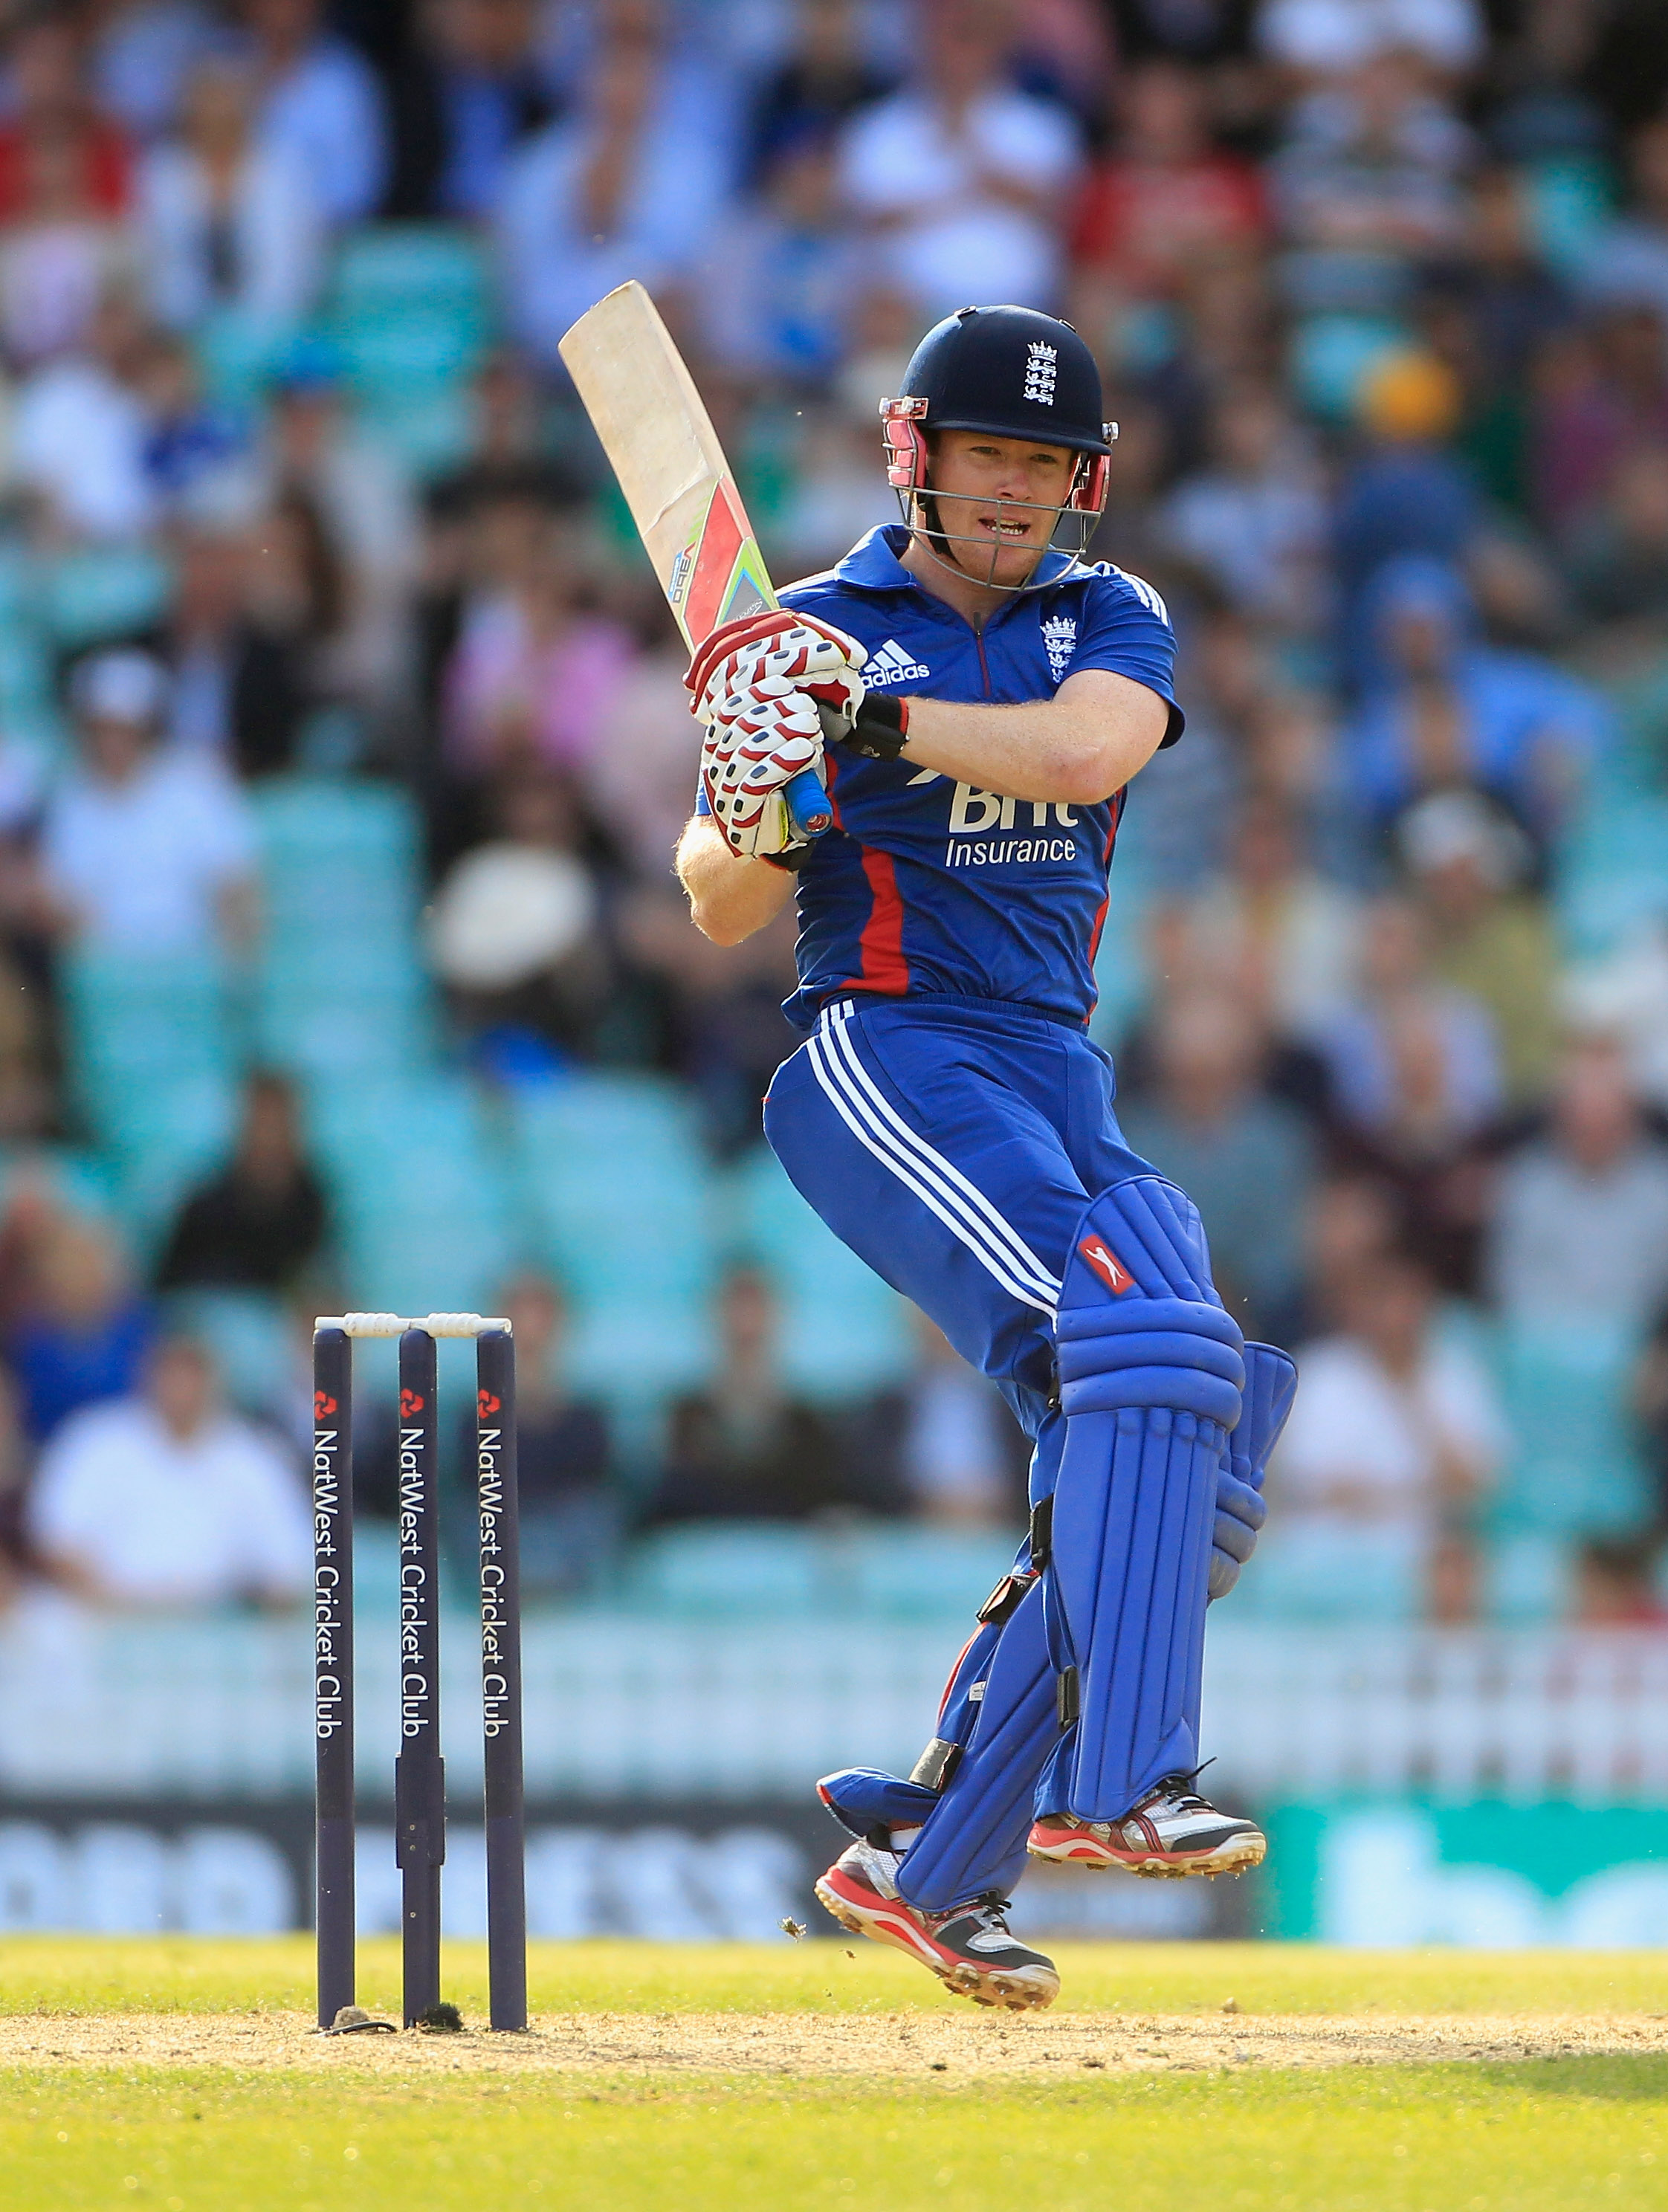 Eoin Morgan hopeful of using Twenty20 games to reclaim Test place